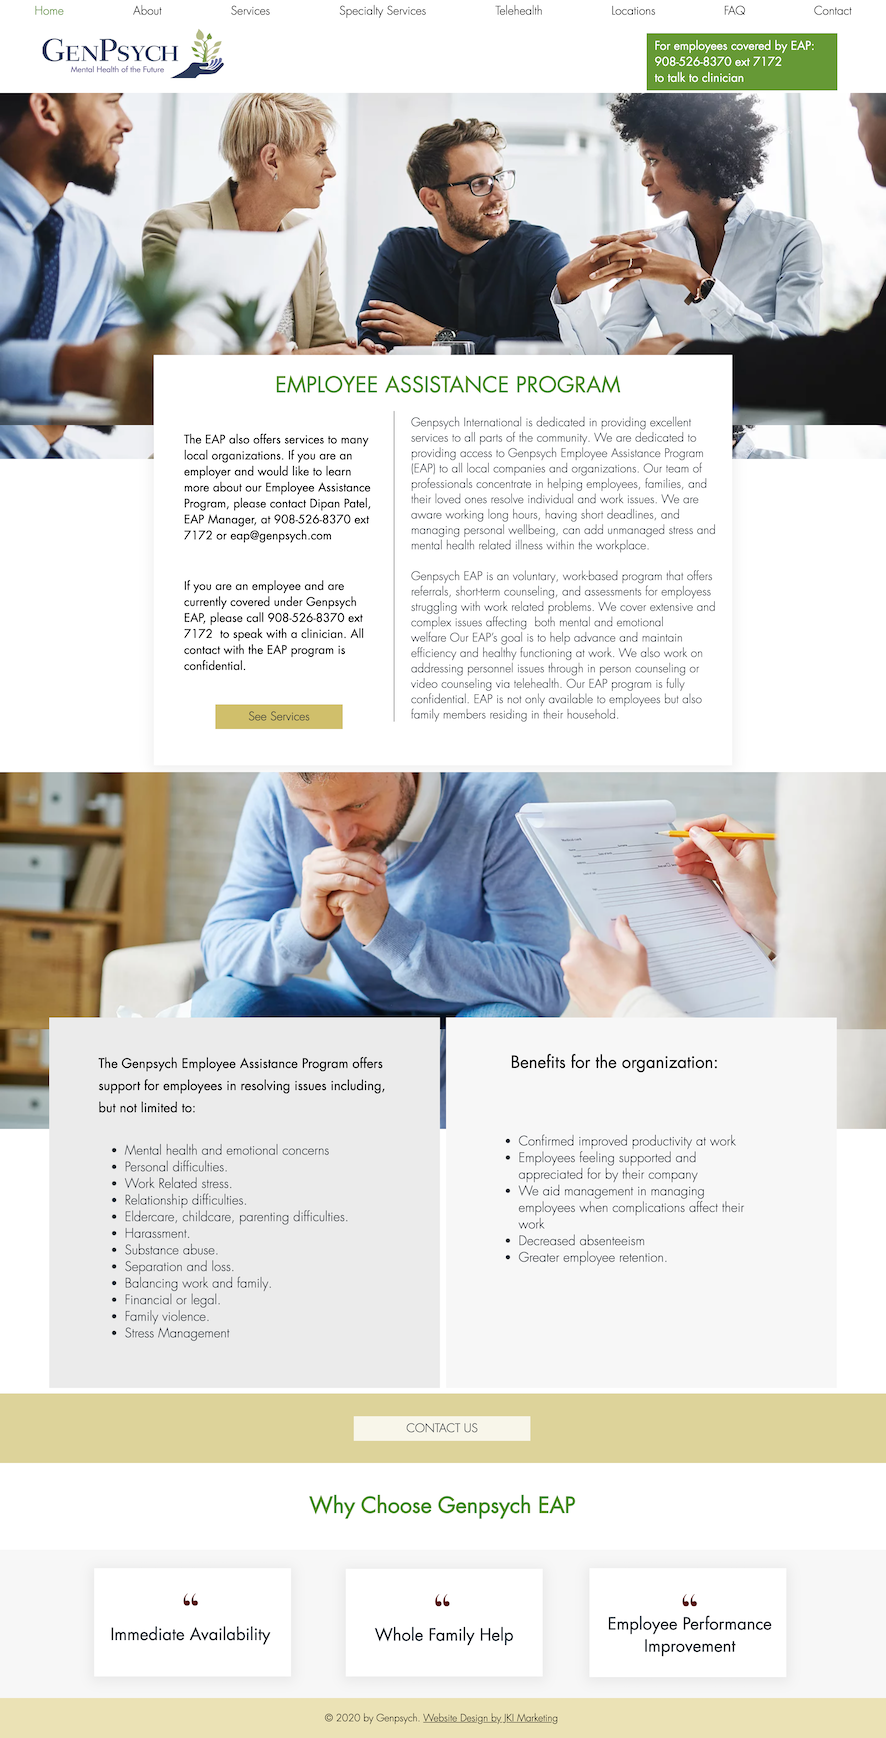 Web design for GenPsych in NJ